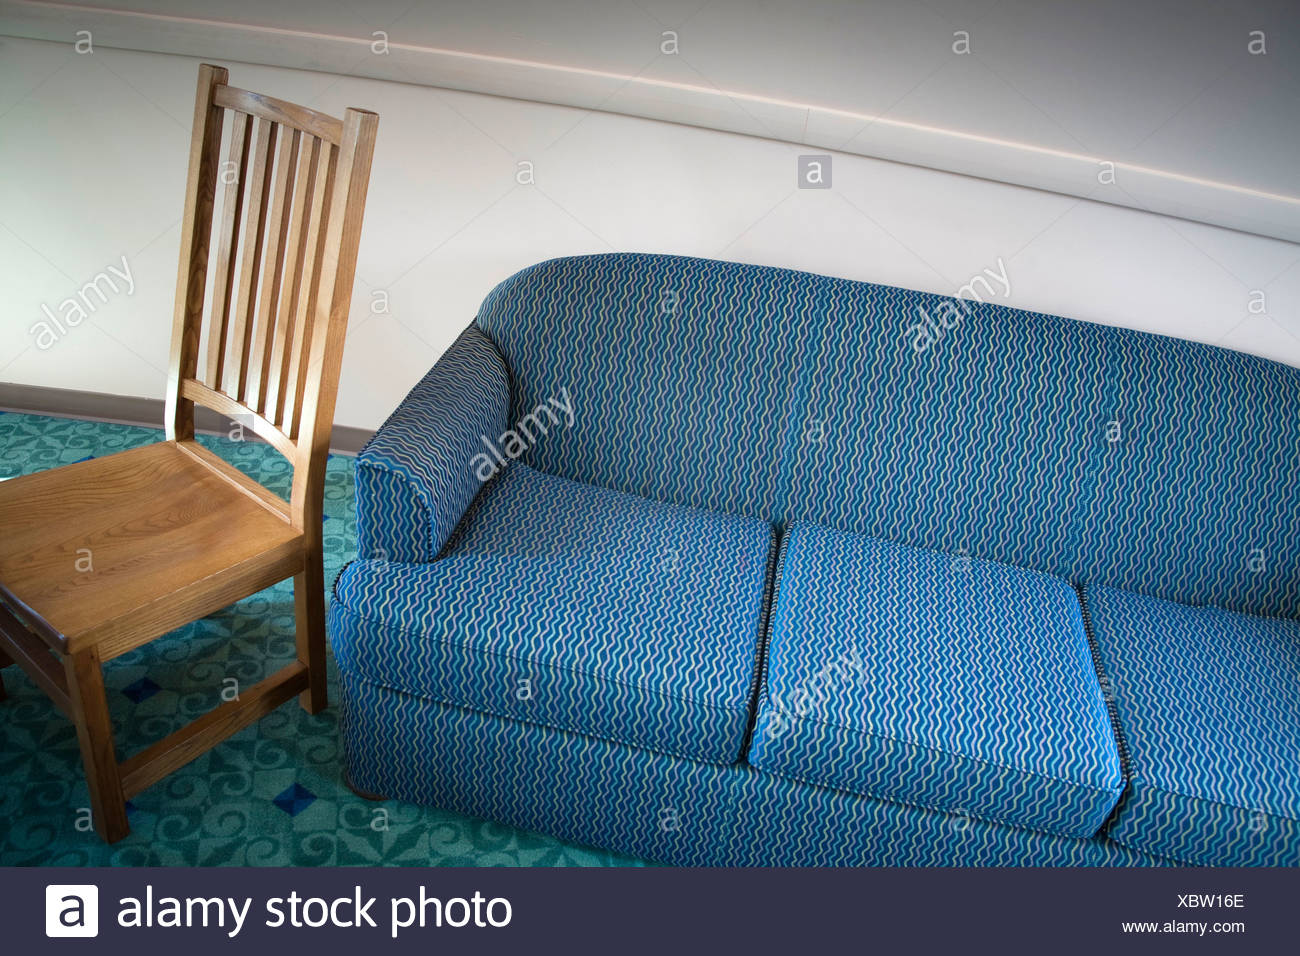 Sofa and chair in a college lounge & Sofa and chair in a college lounge Stock Photo: 282676870 - Alamy